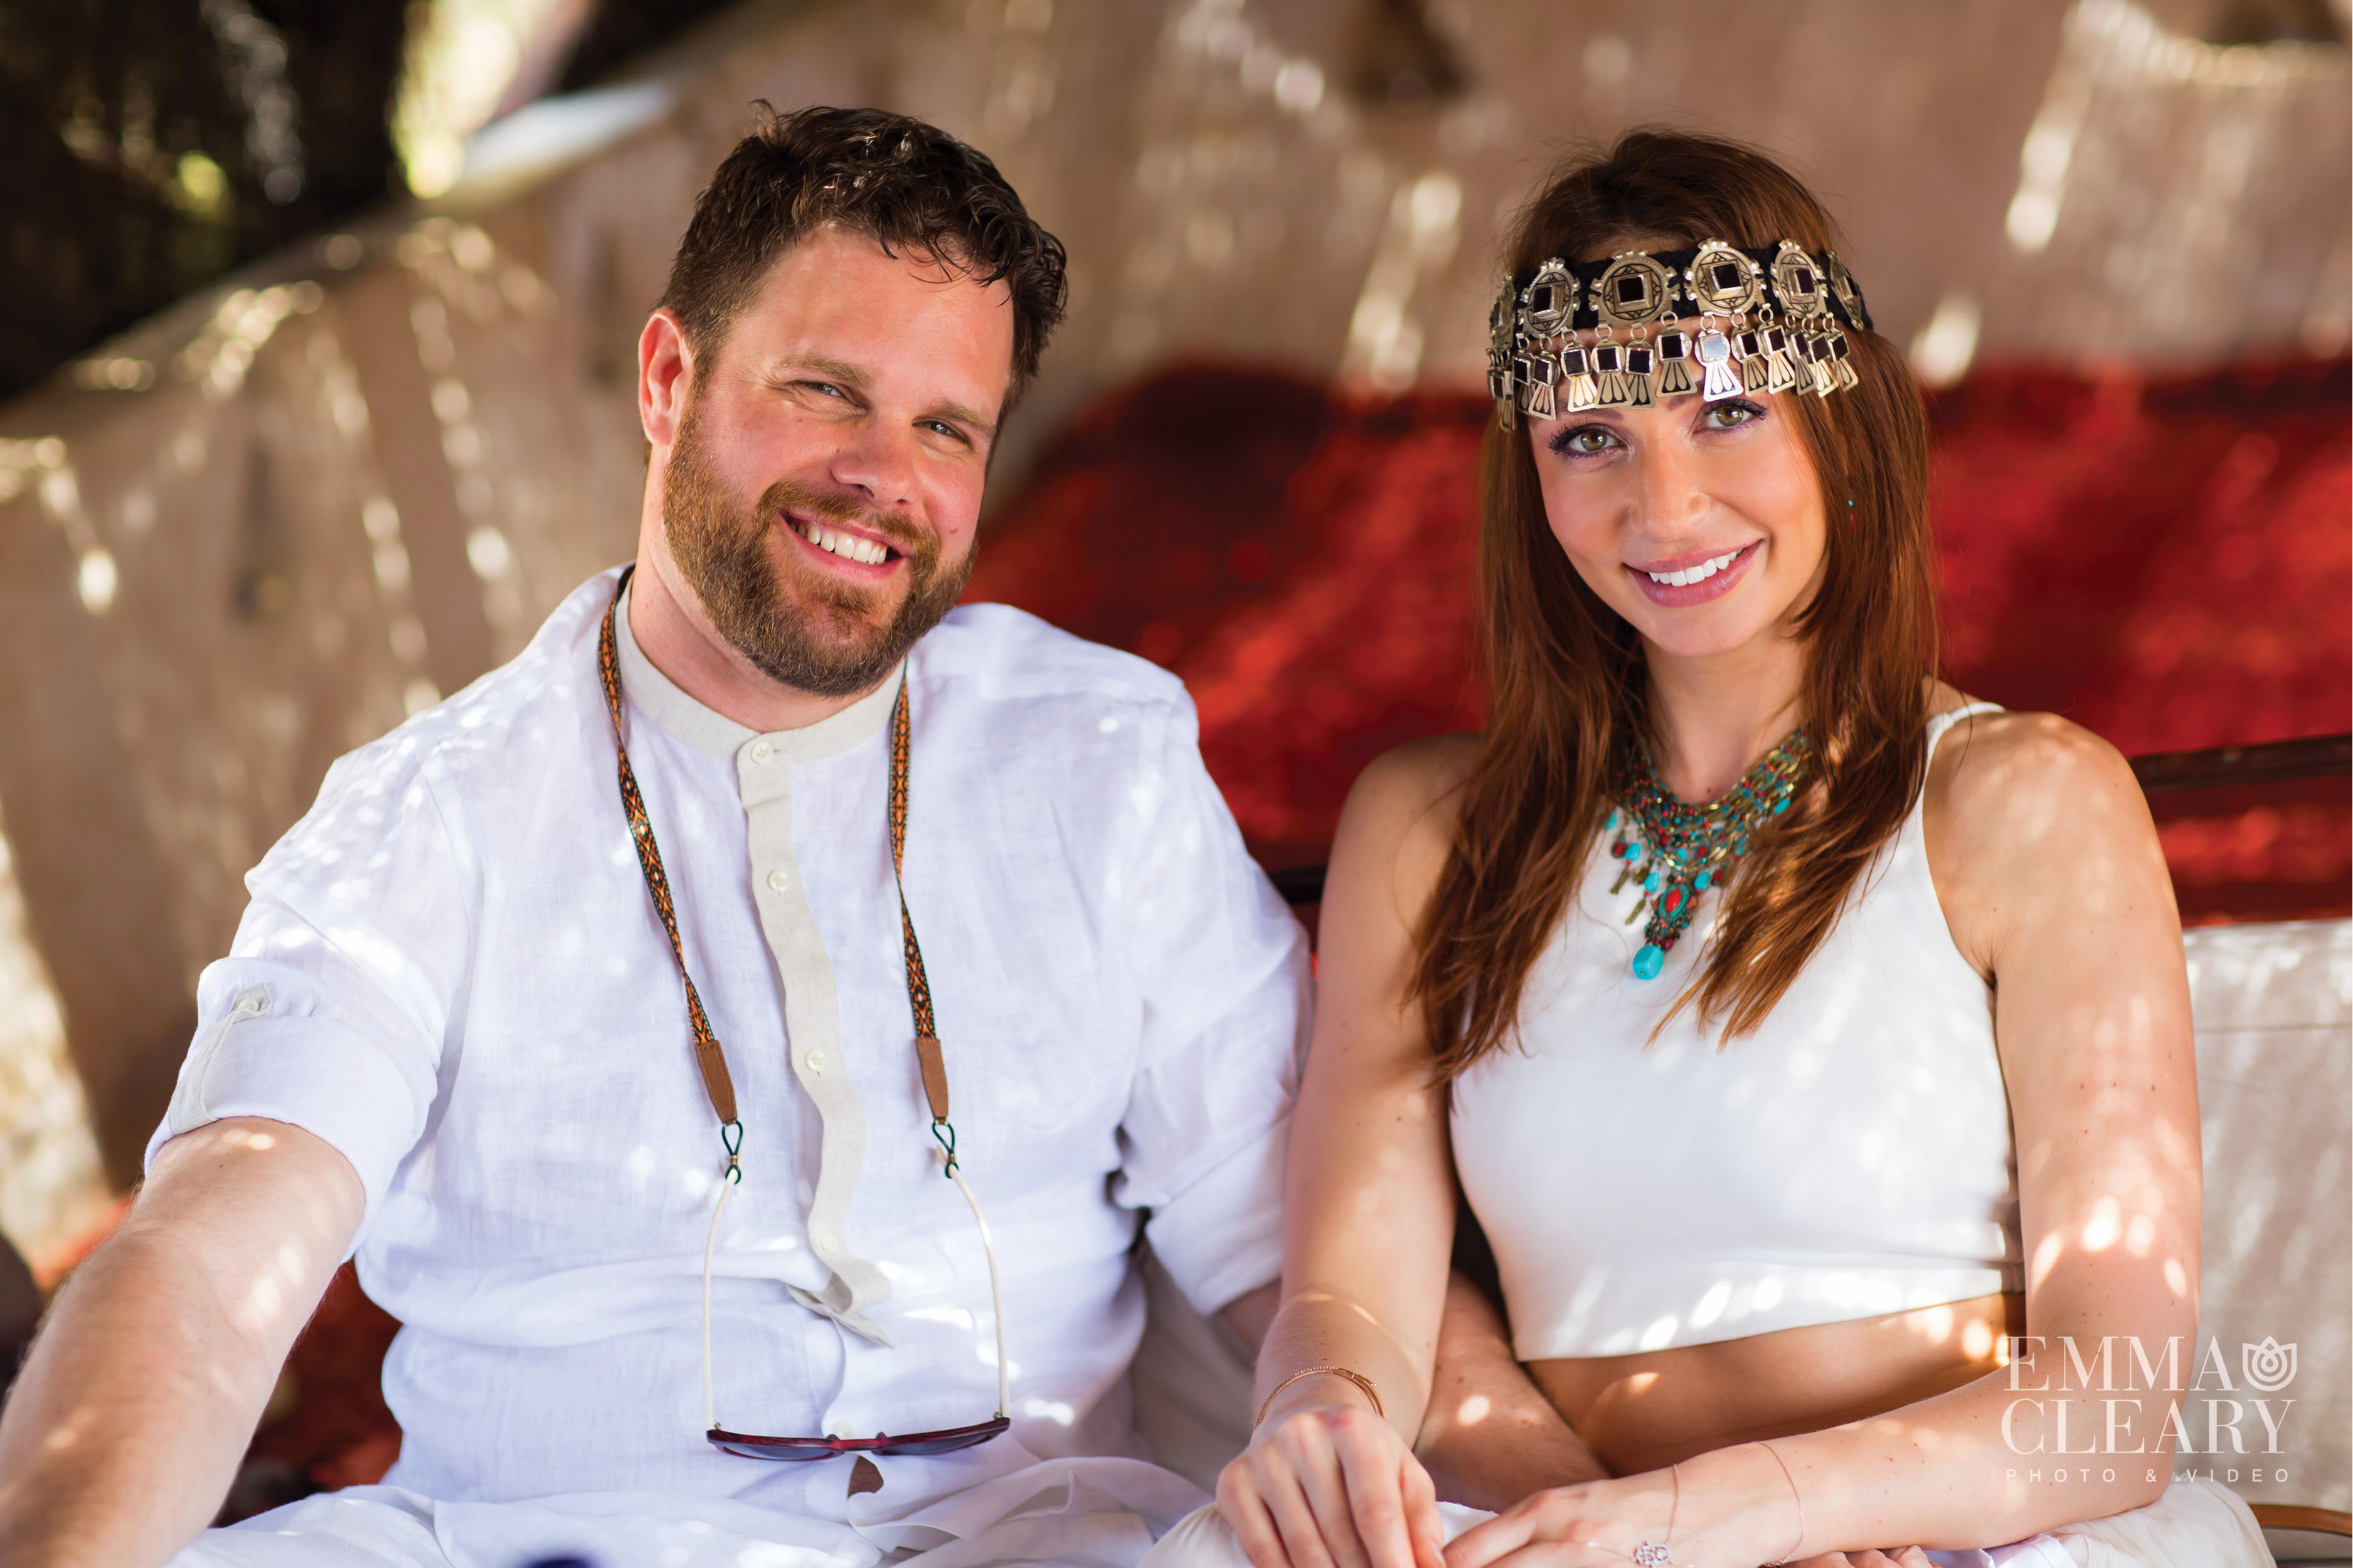 Emma_cleary_photography Destination Wedding Morrocco05